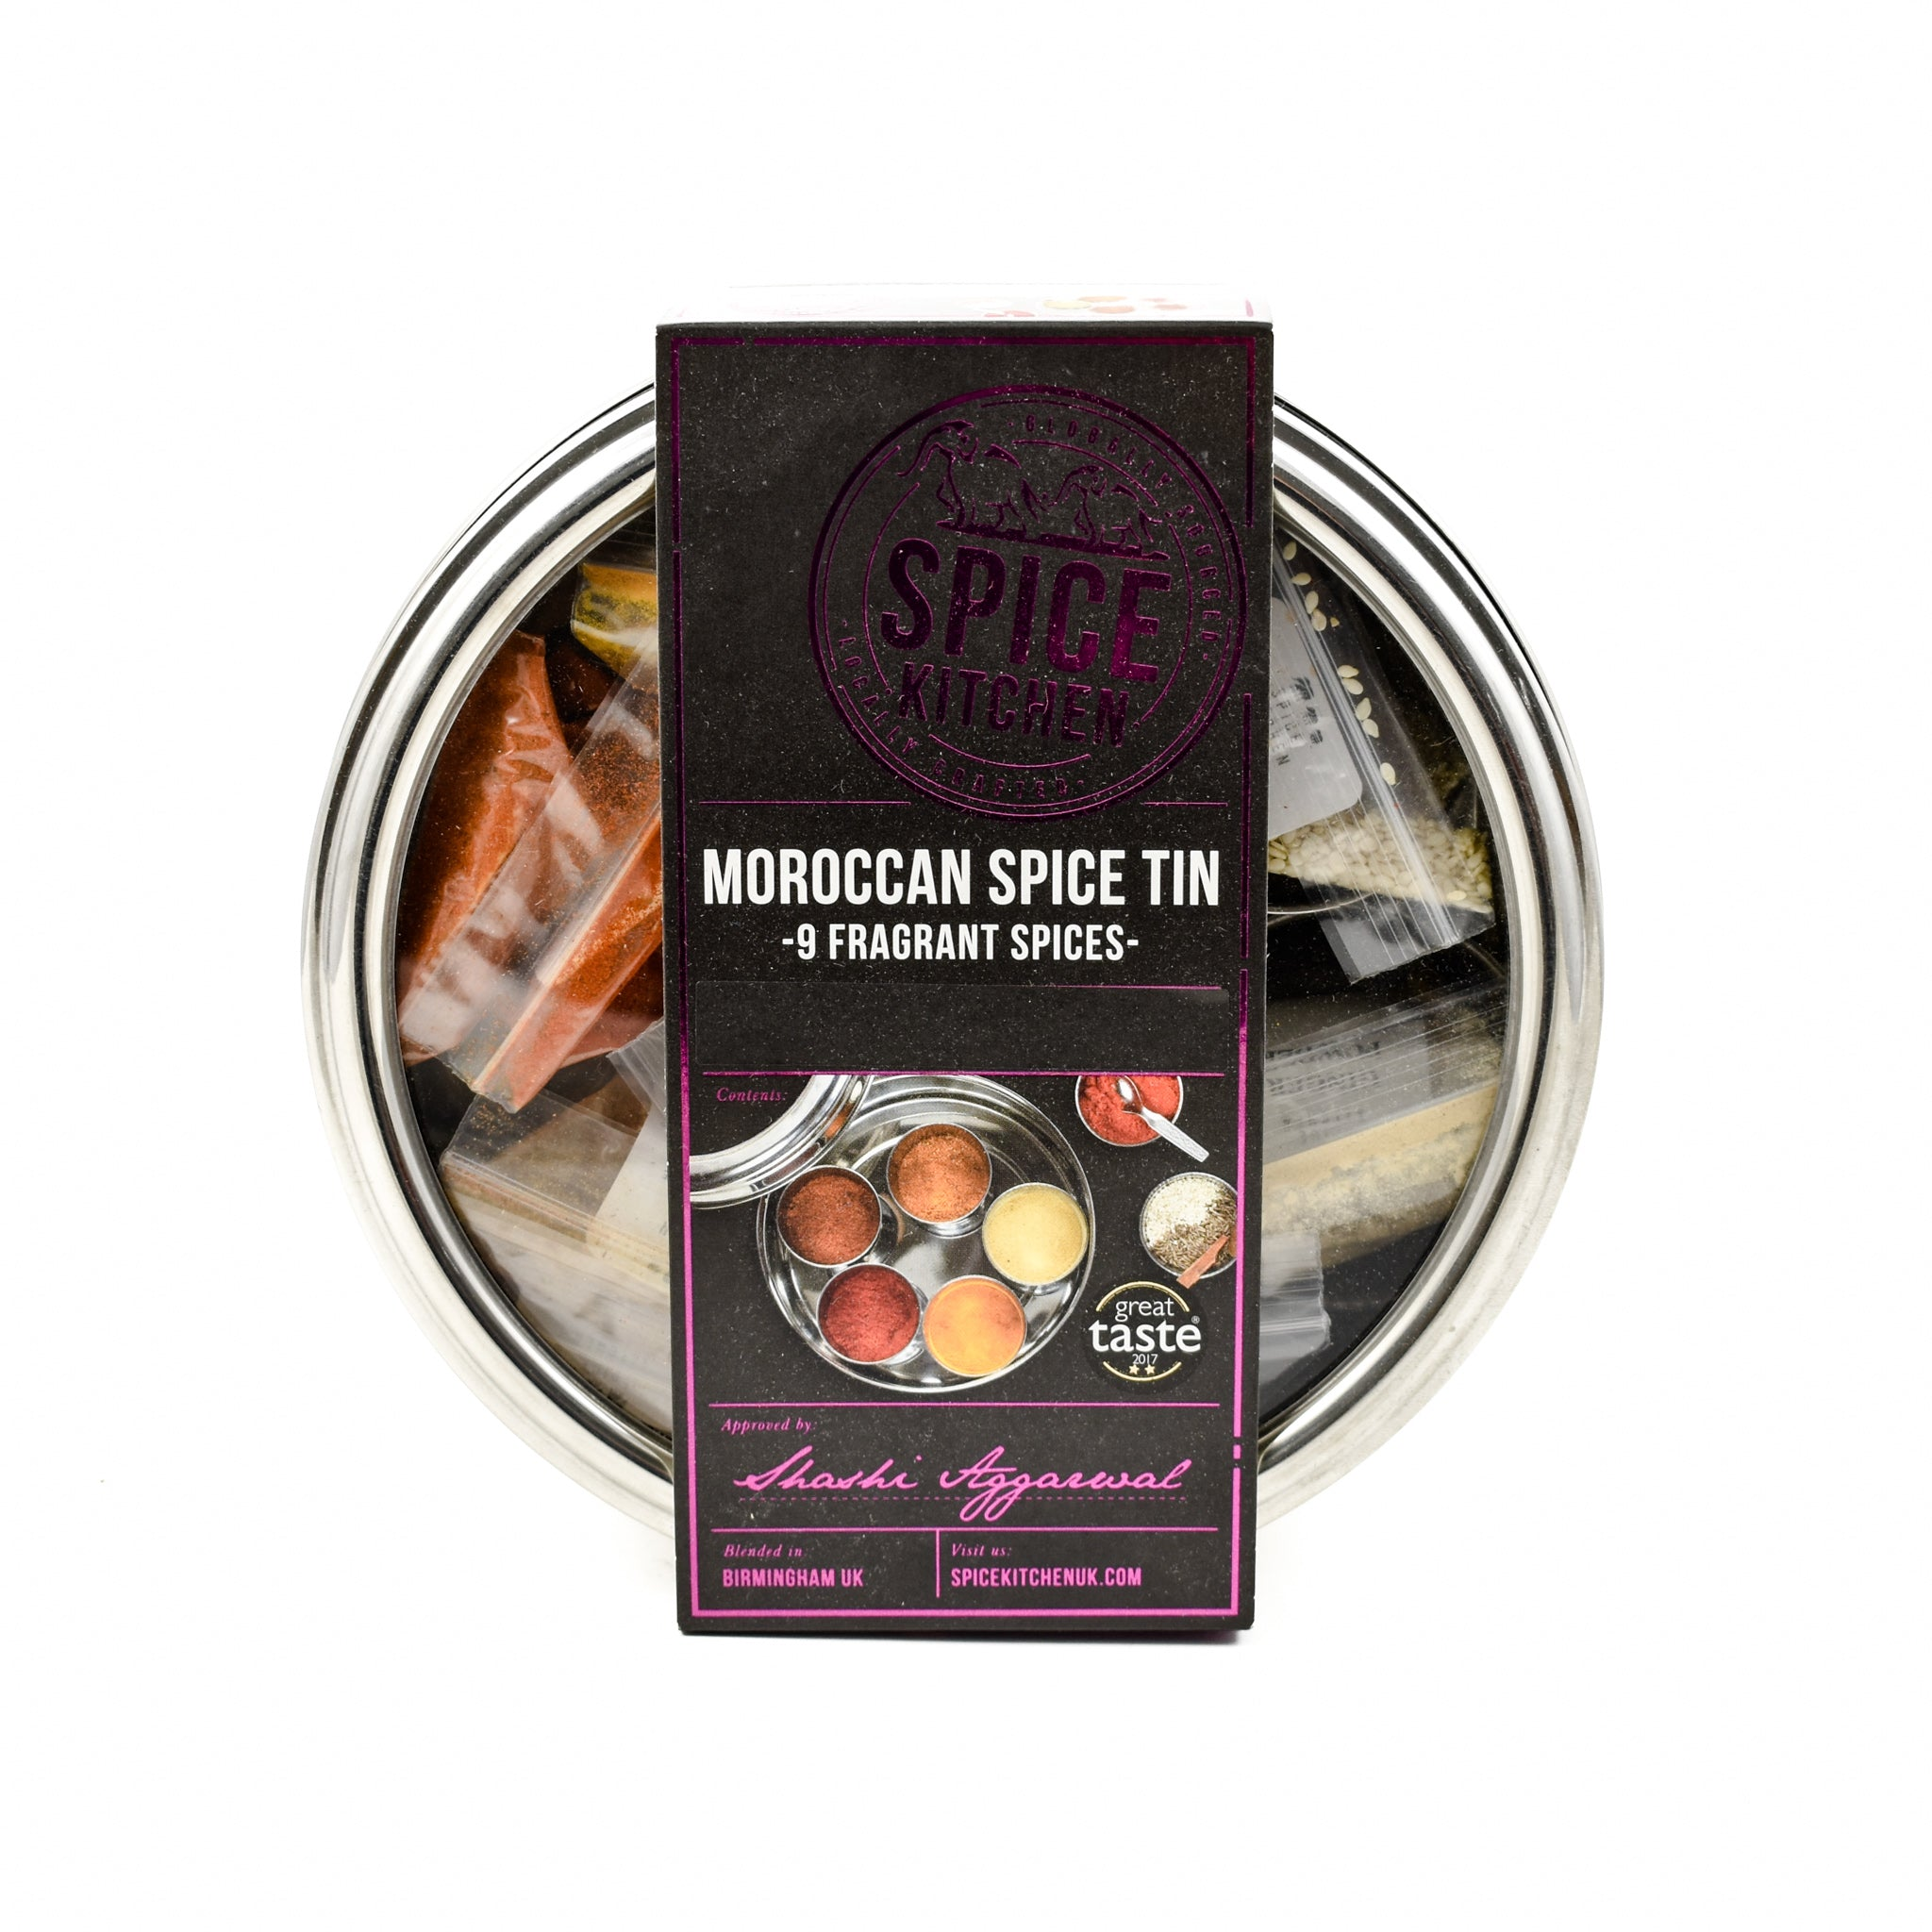 Spice Kitchen Moroccan Spice Tin Ingredients Seasonings